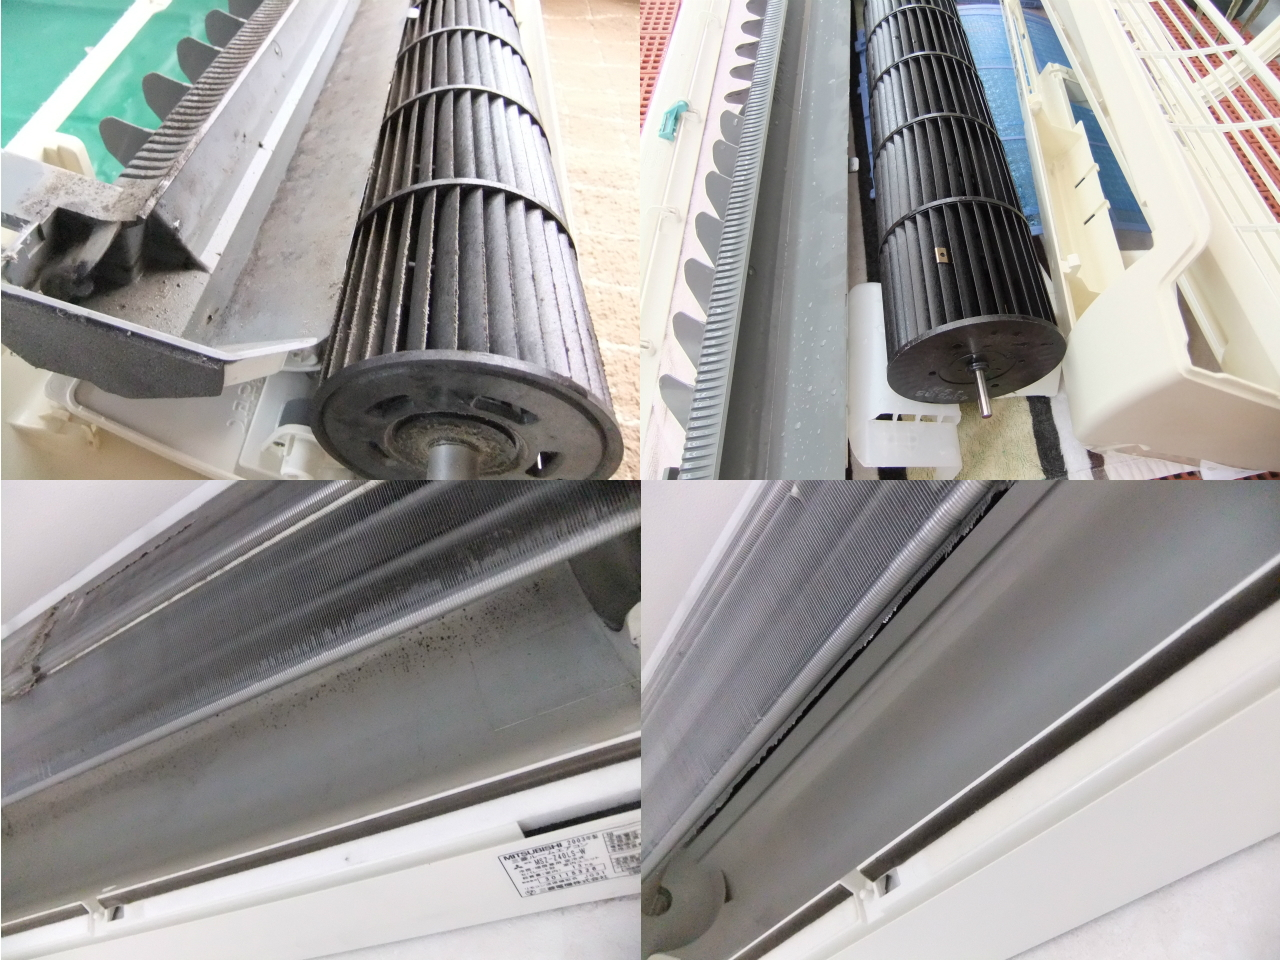 http://ajras.net/images/110802-aircon2.jpg